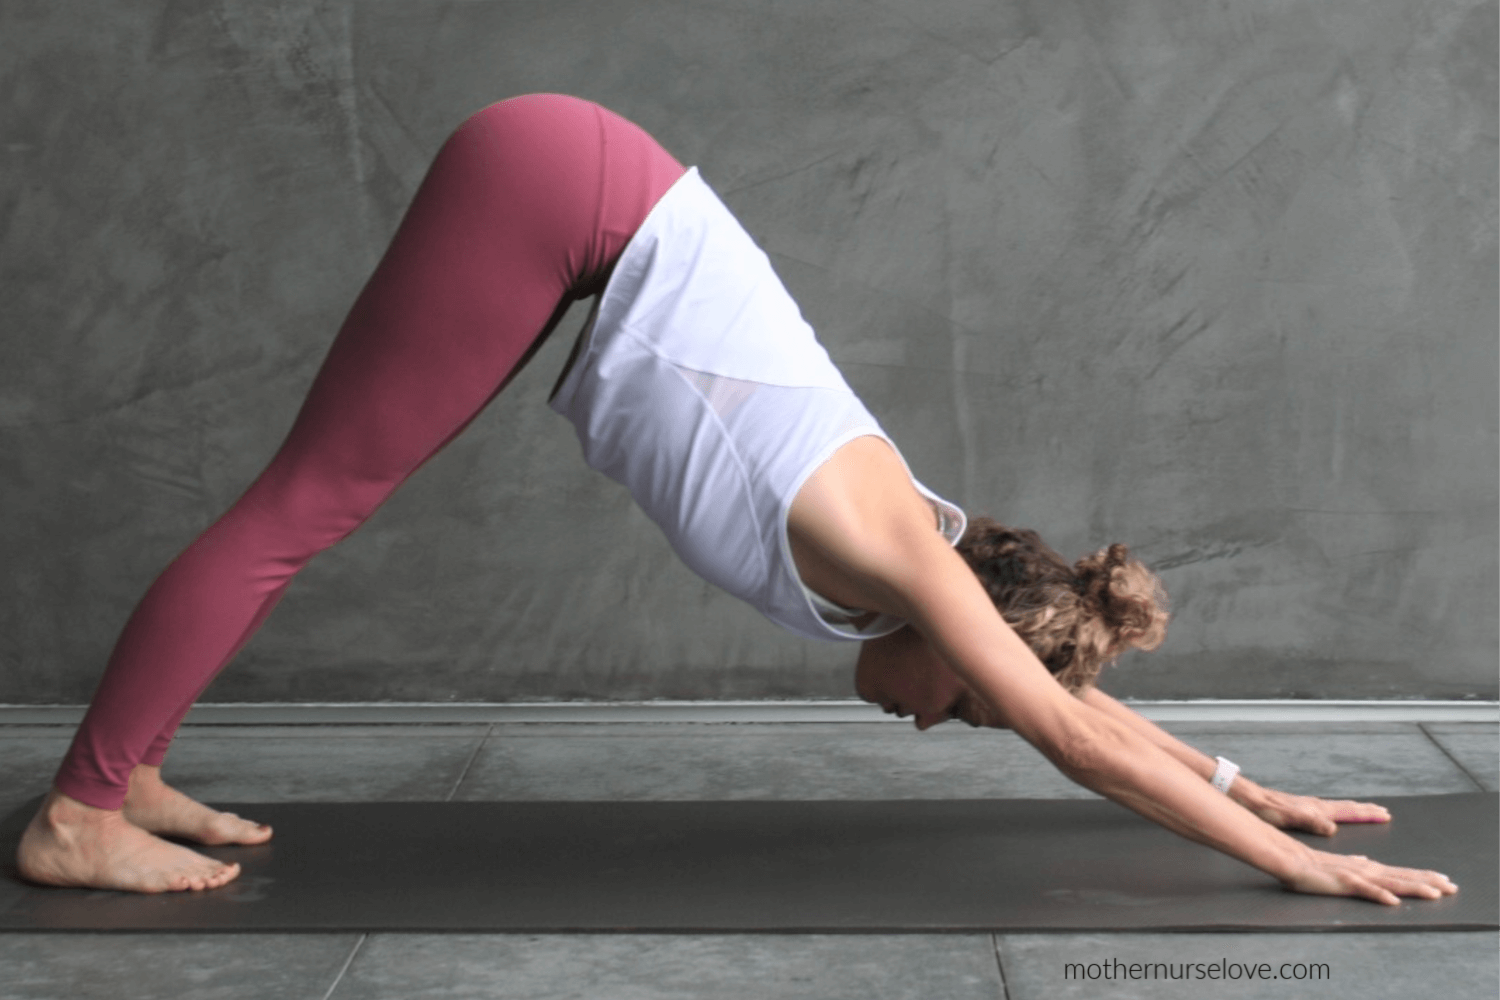 7 Energizing Yoga Poses For Nurses (With Photos!)